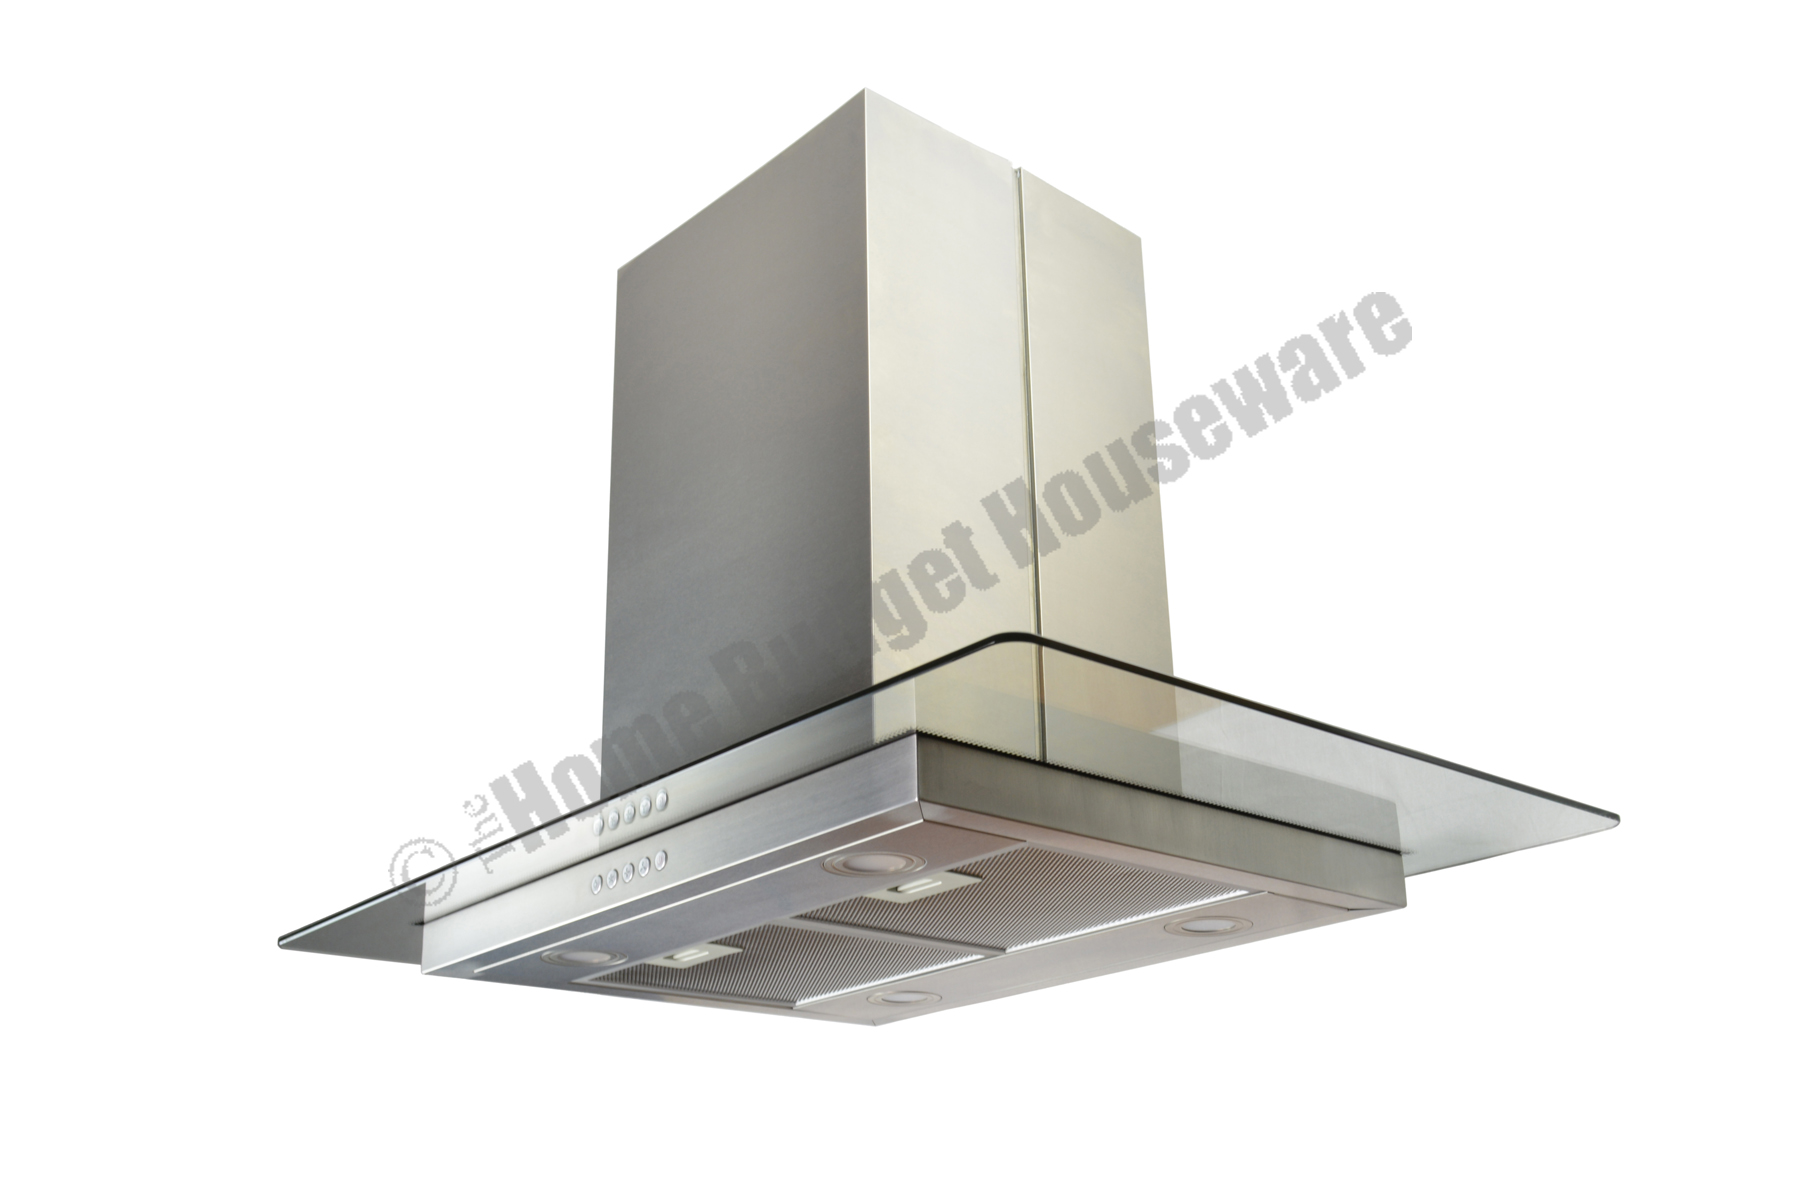 36 Island Stainless Steel Range Hood Vent With Charcoal